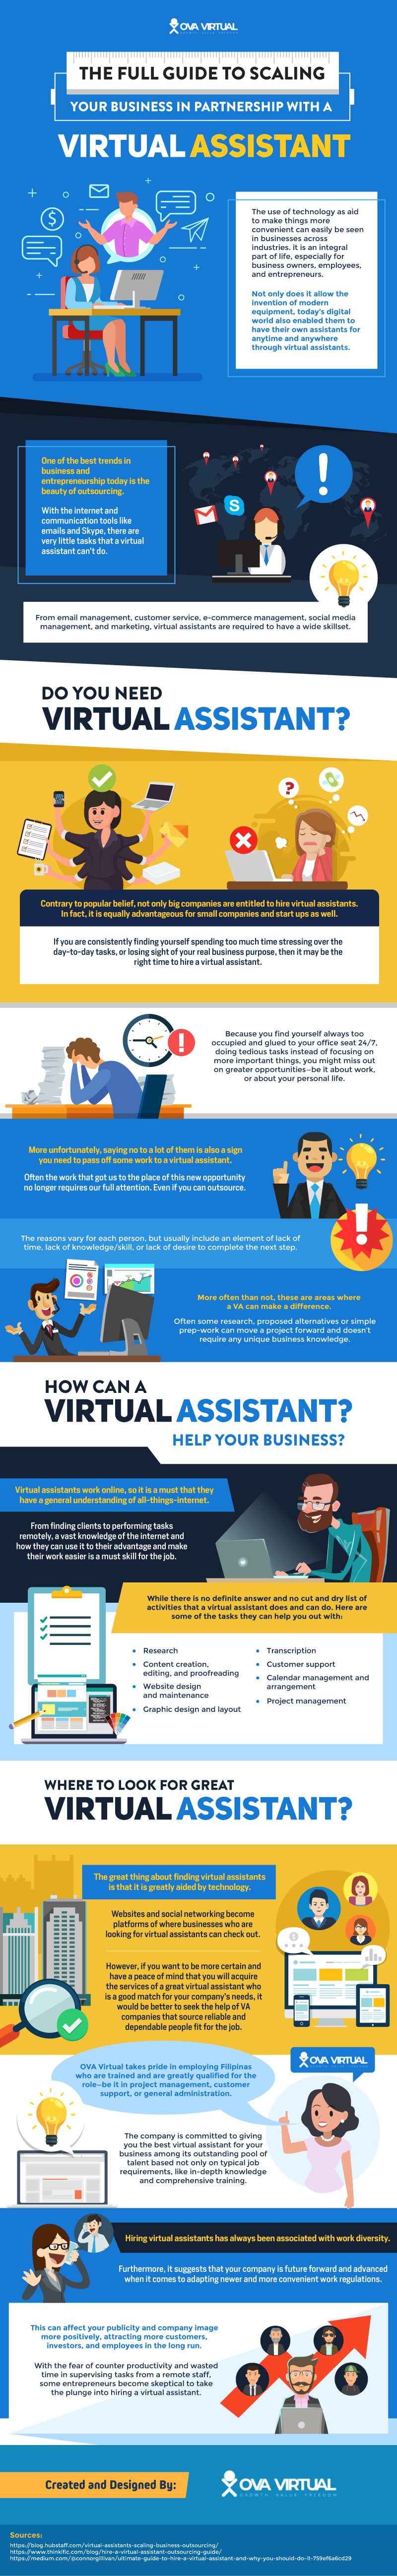 Scaling Your Business in Partnership with a Virtual Assistant - Infographic